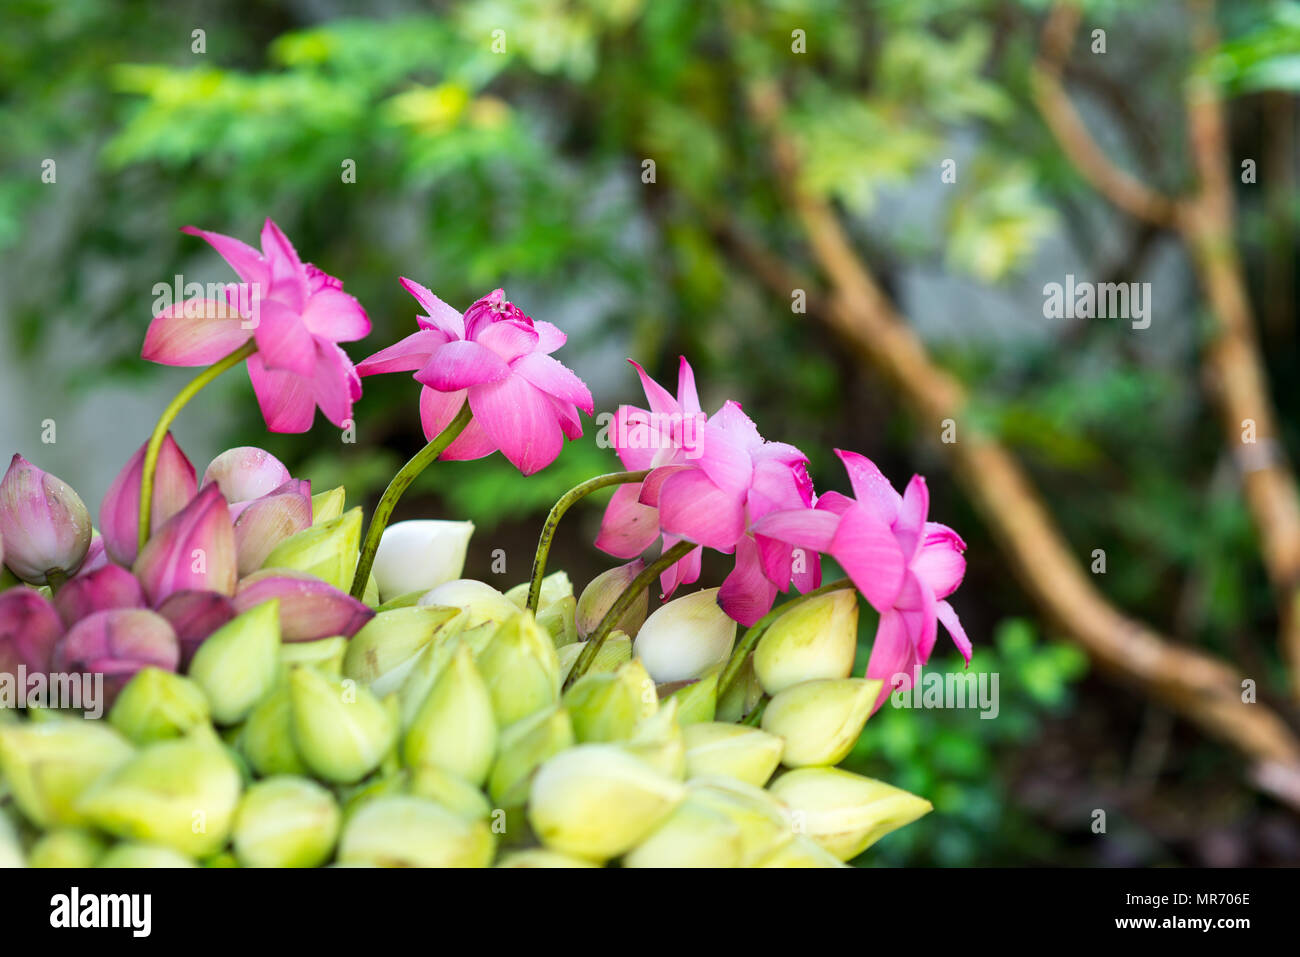 Bunch Of Beautiful White And Pink Lotus Flowers Stock Photo